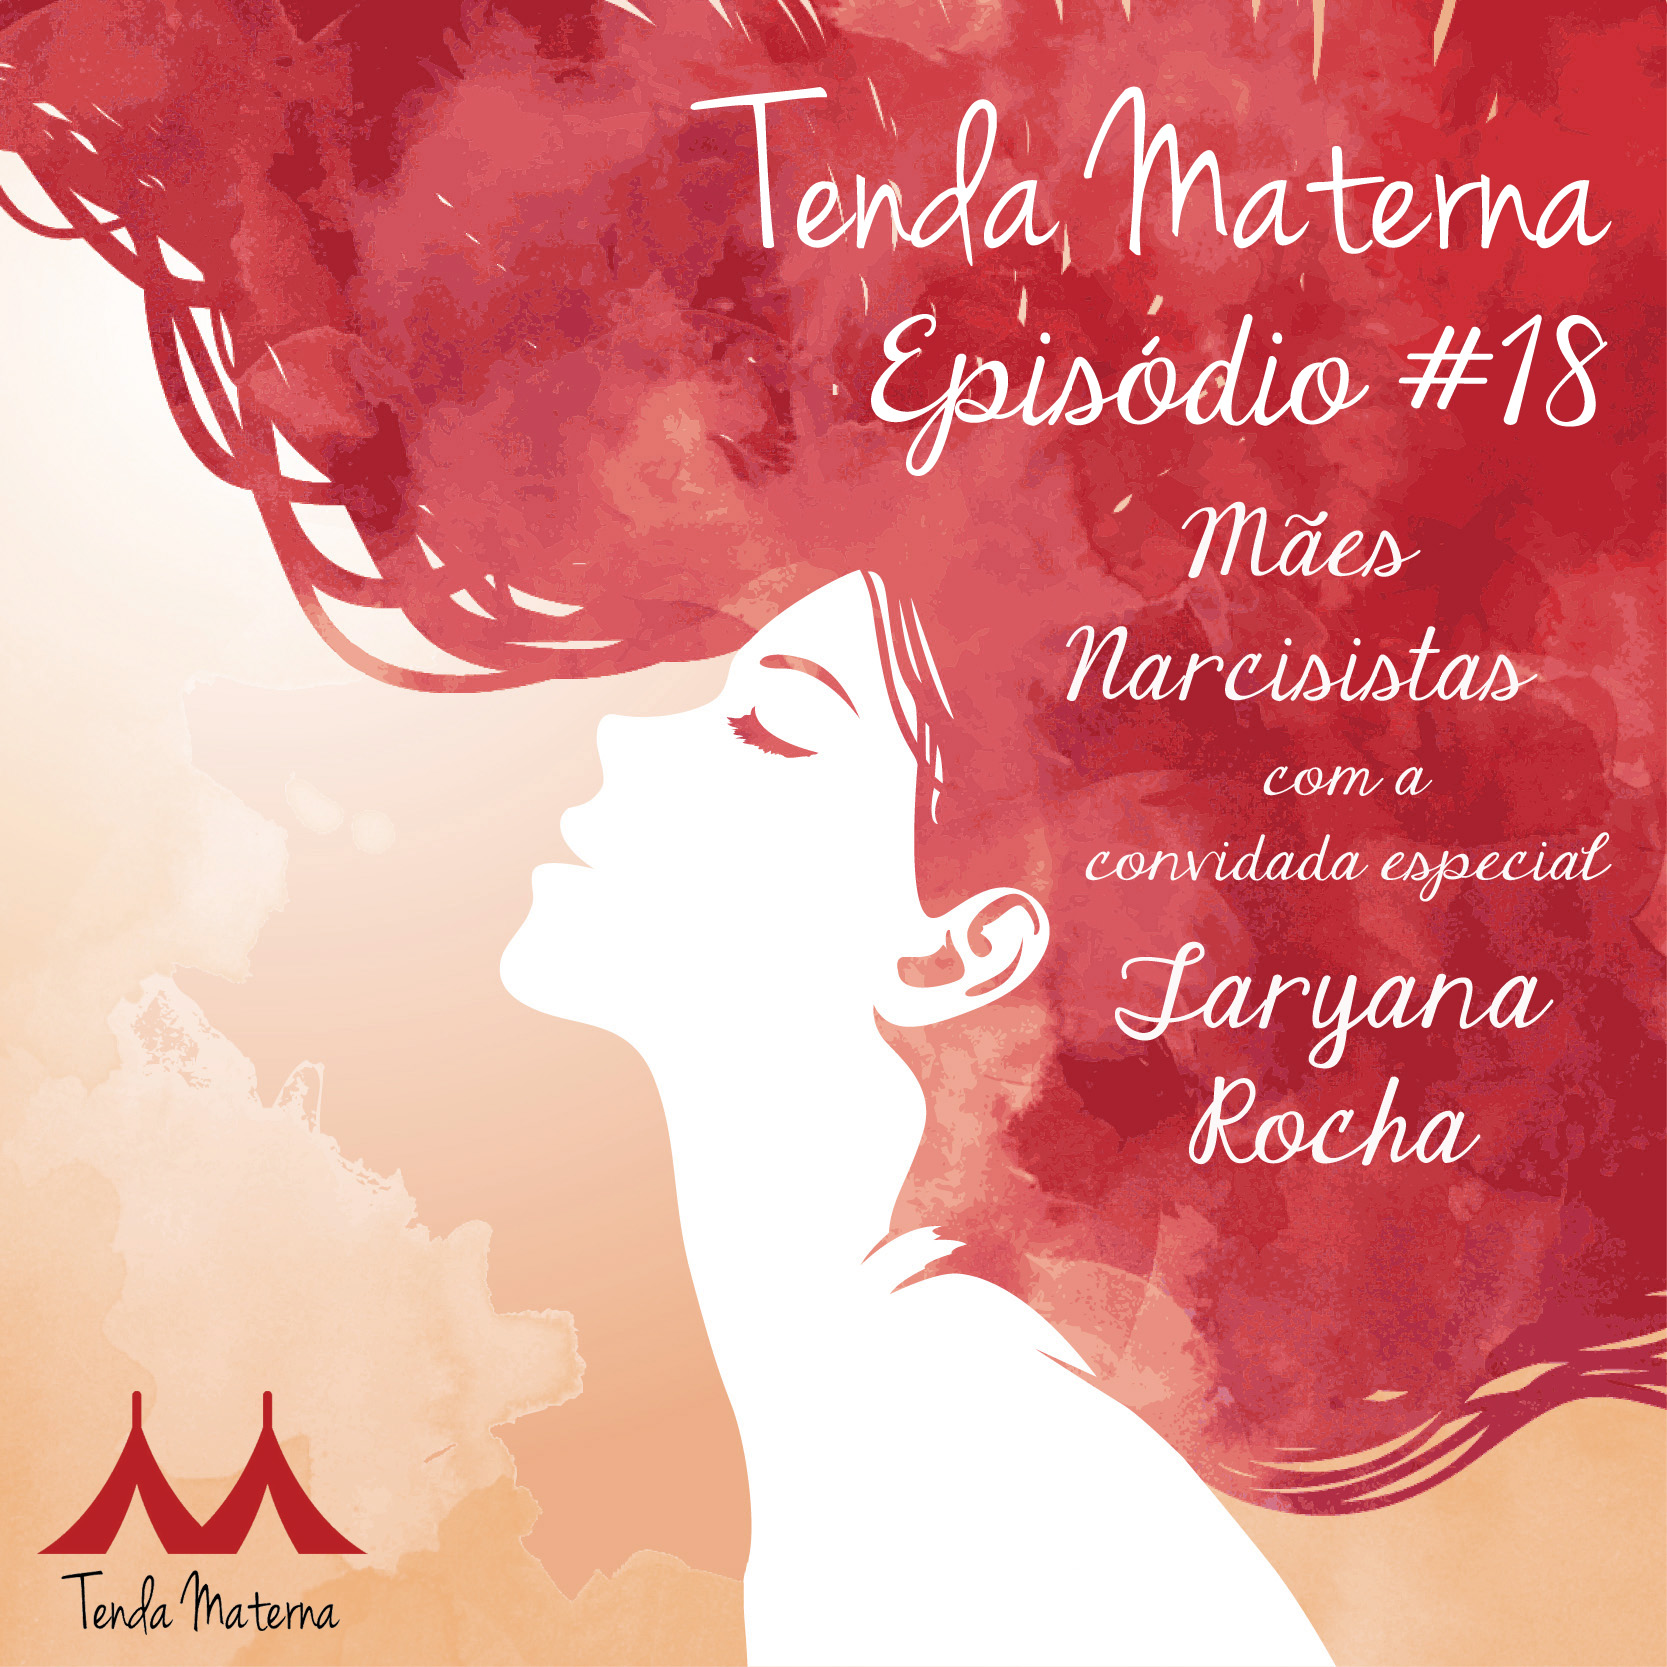 Podcast Tenda Materna #18: Mães Narcisistas